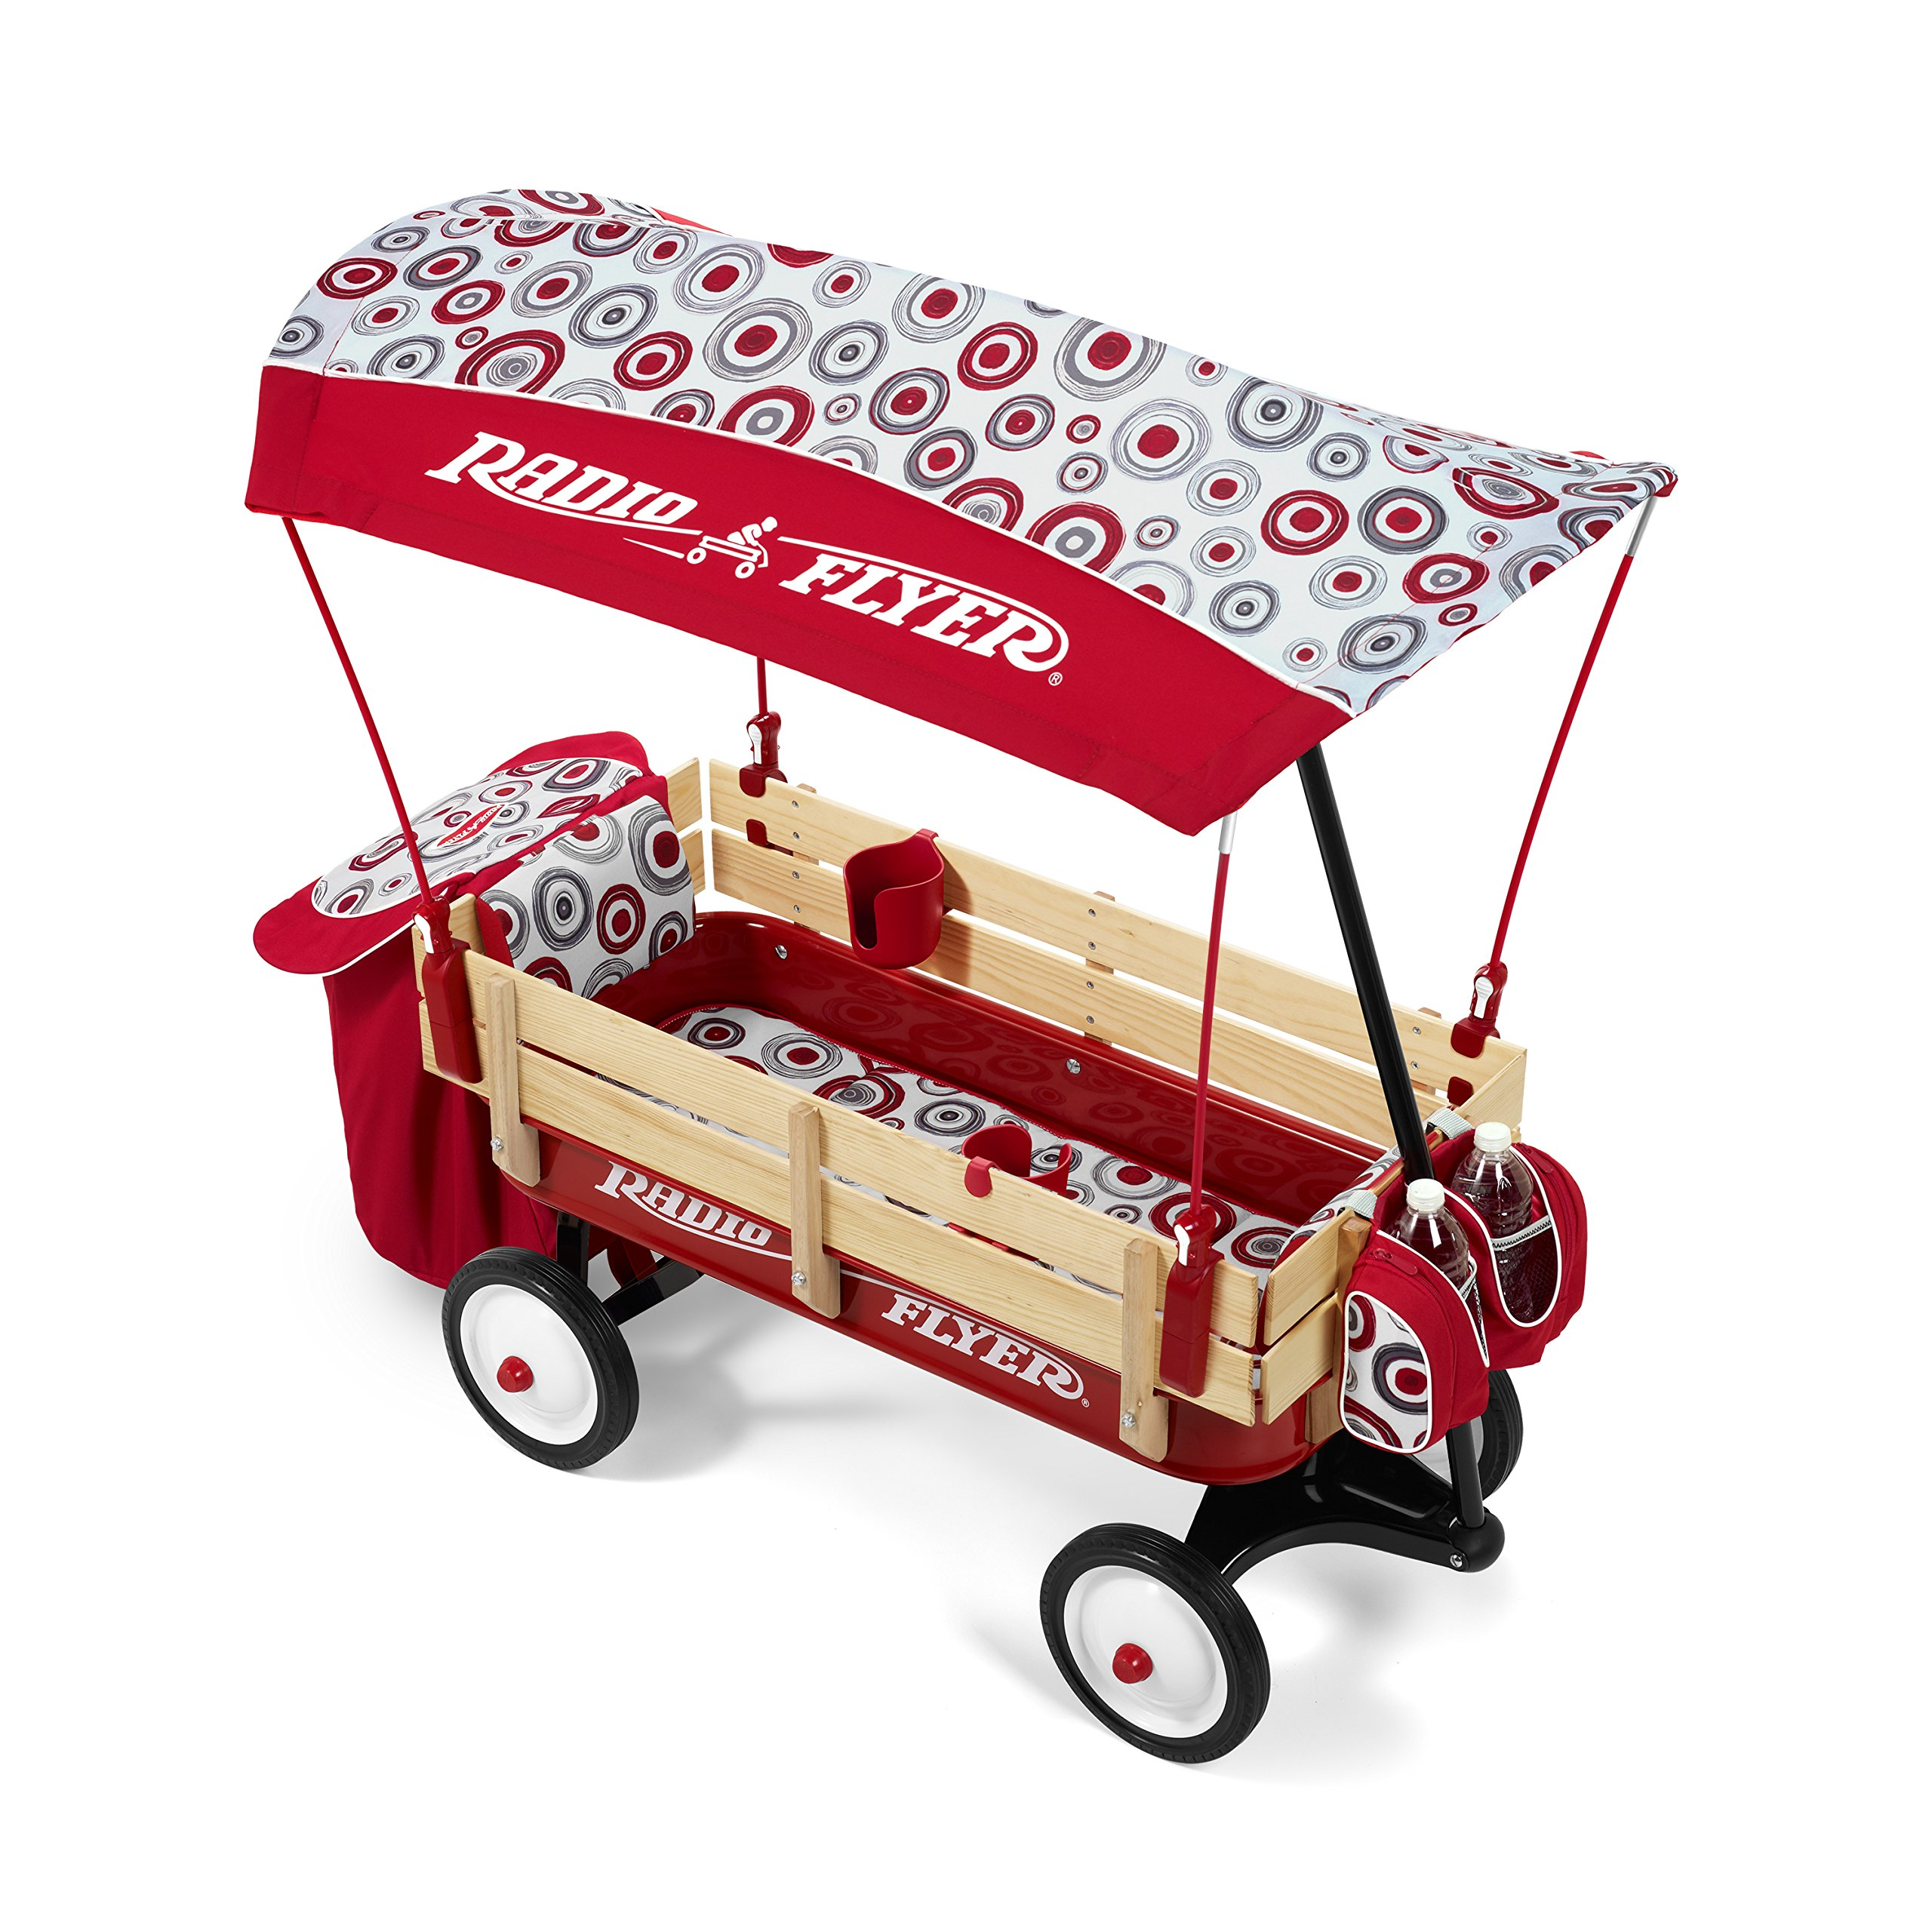 Canopy Radio System : Radio flyer build a wagon steel wood rubber tires